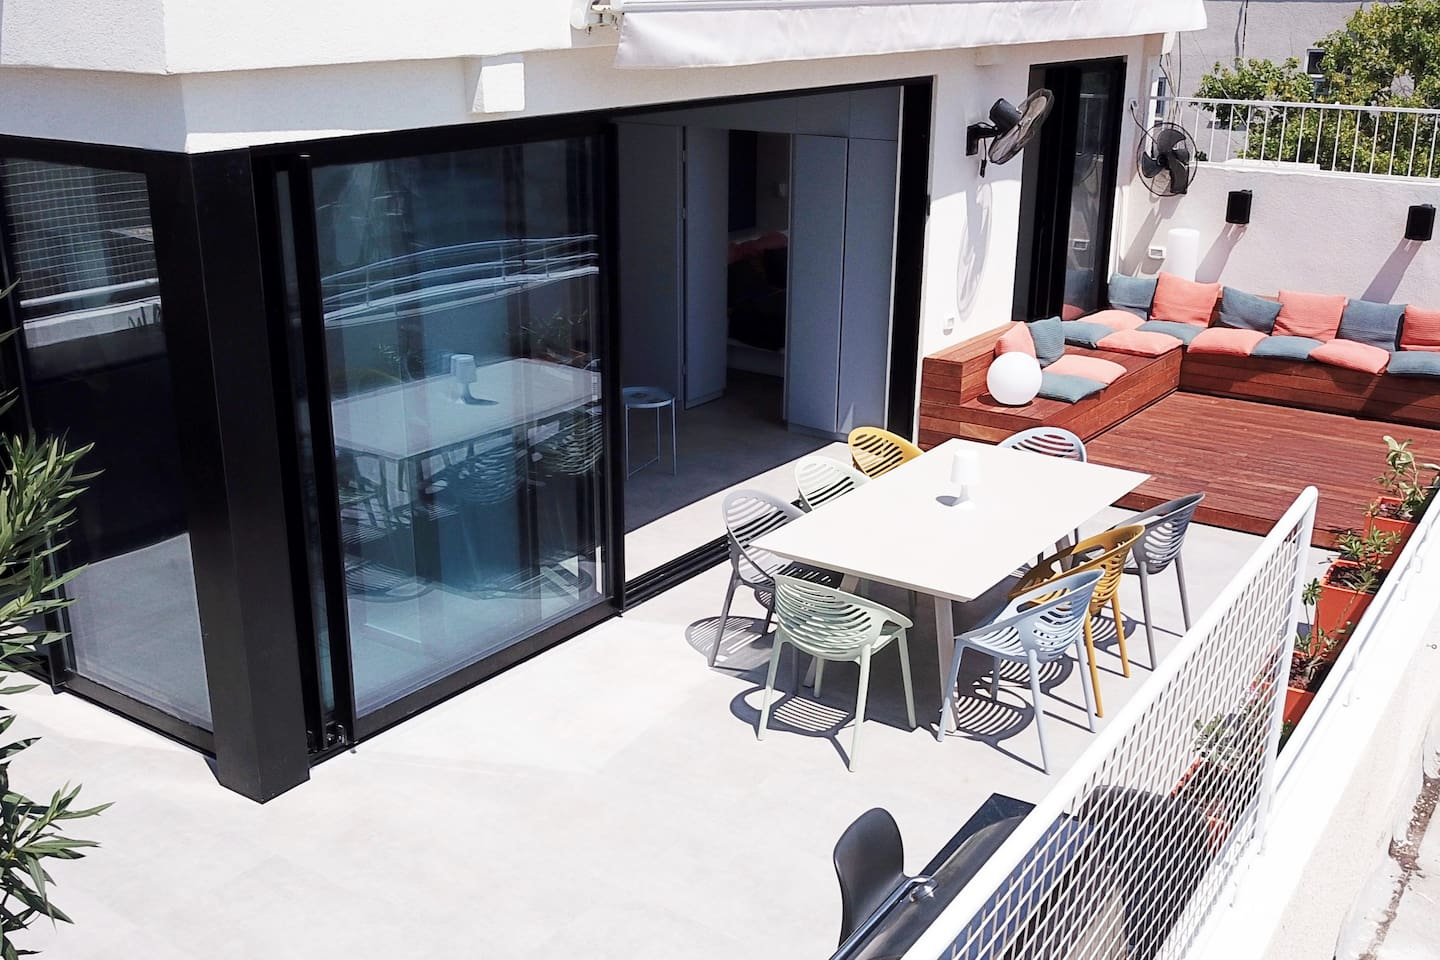 The inside living space blends seamlesslely with the 60m roof terrace with expandable dining table, large deck, built-in gas BBQ and utility area.  Enjoy cityscape views across the Tel Aviv skyline from the terrace.